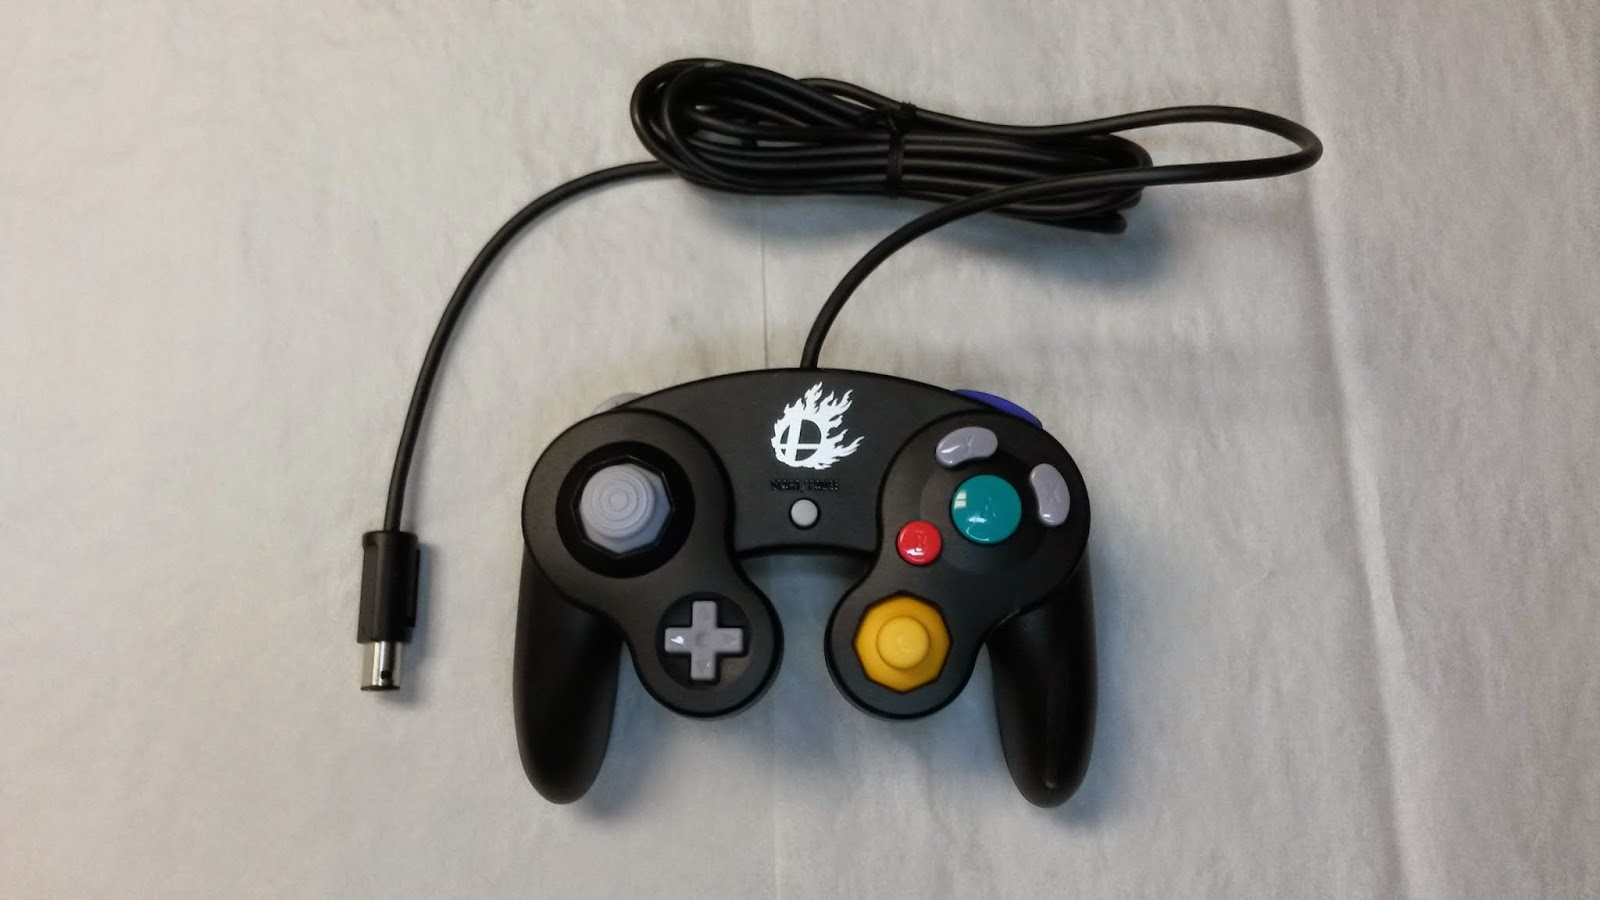 hight resolution of gamecube controller wiring diagram right stick wiring library ps1 controller wiring diagram gamecube controller wiring diagram right stick